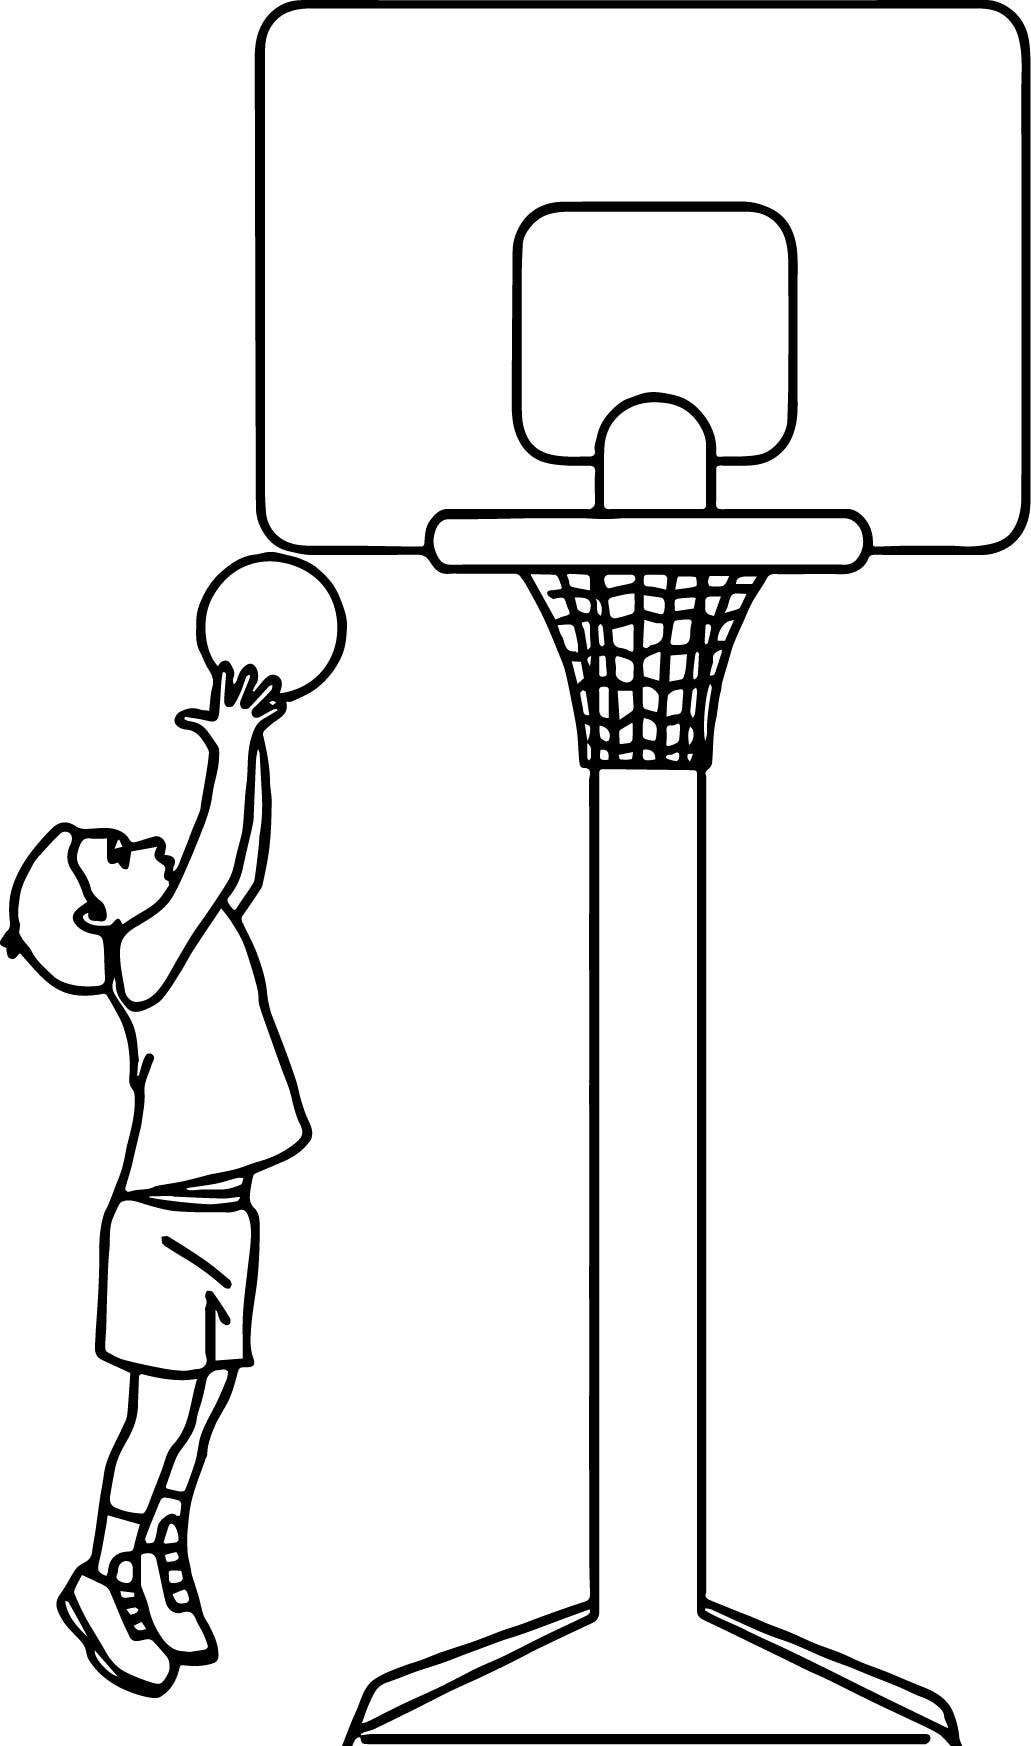 Child Playing Basketball Playing Basketball Coloring Page